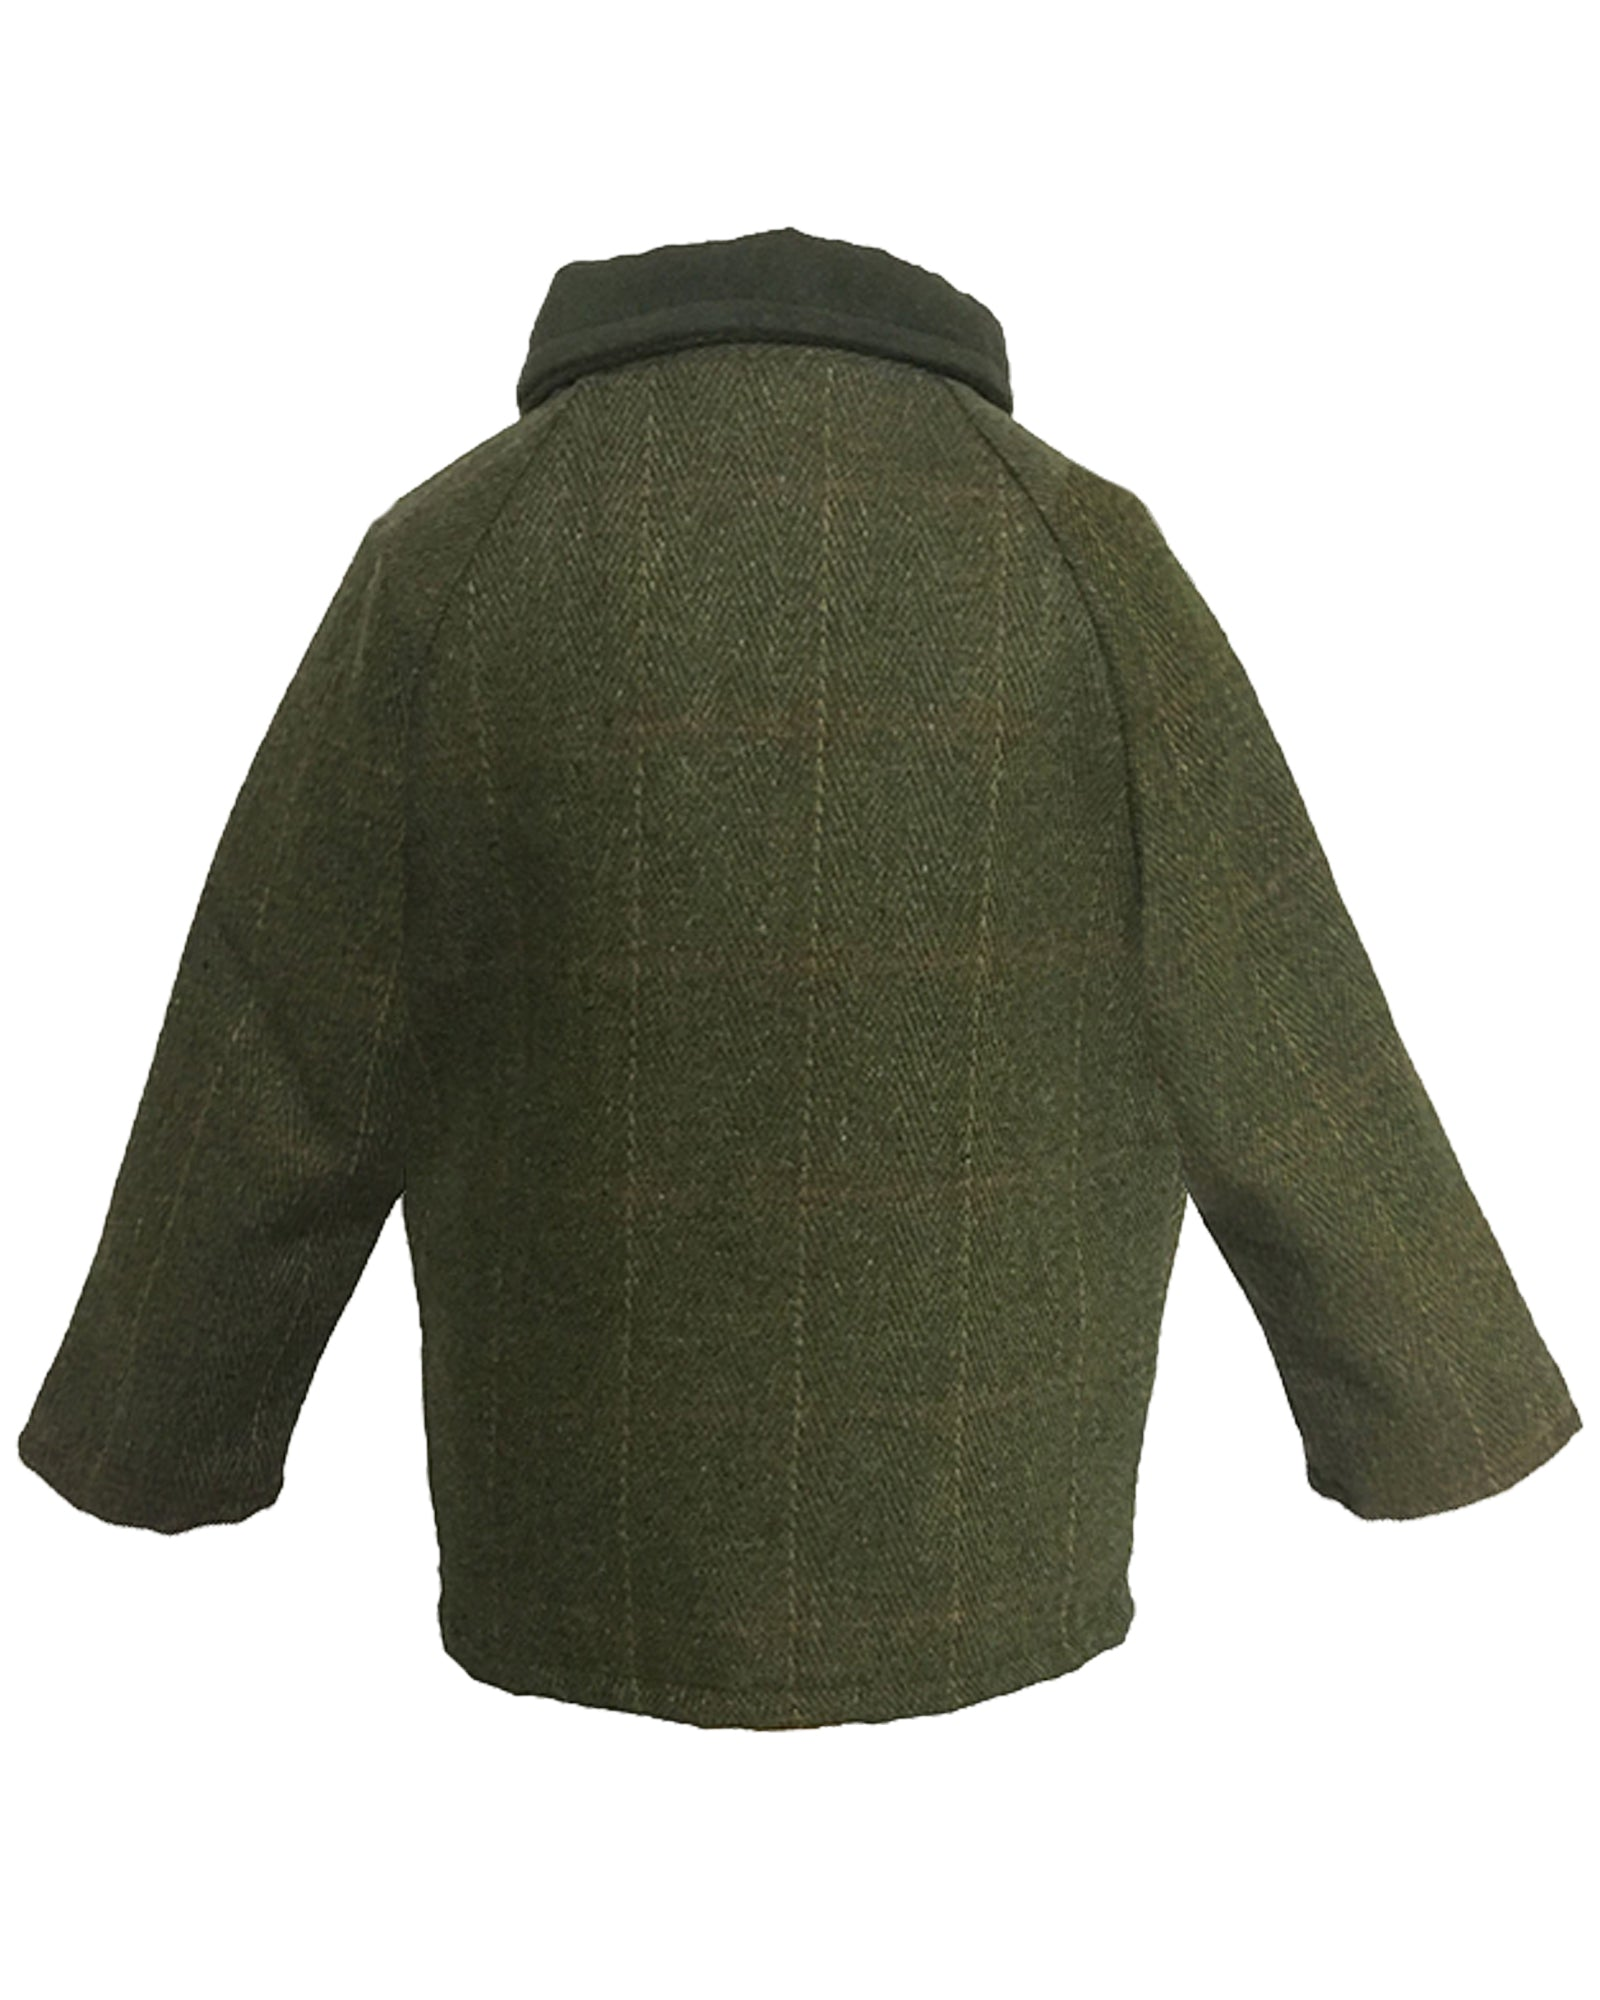 Regents View Childrens Tweed Jacket - Dark Tweed